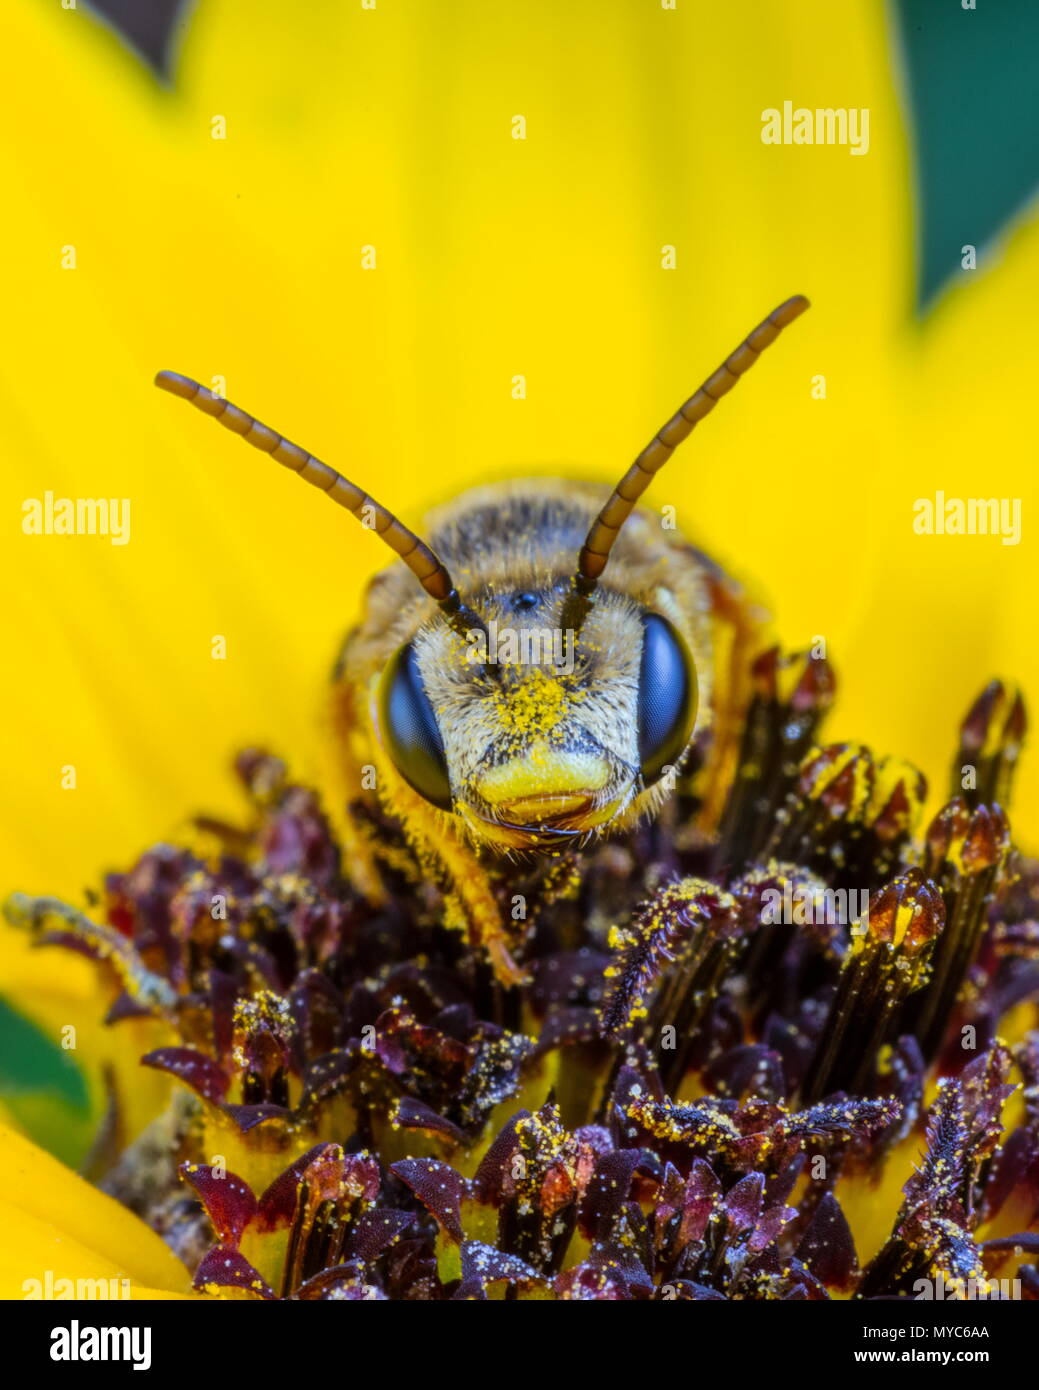 A sweat Bee, Halictus ligatus, on a yellow flower. - Stock Image